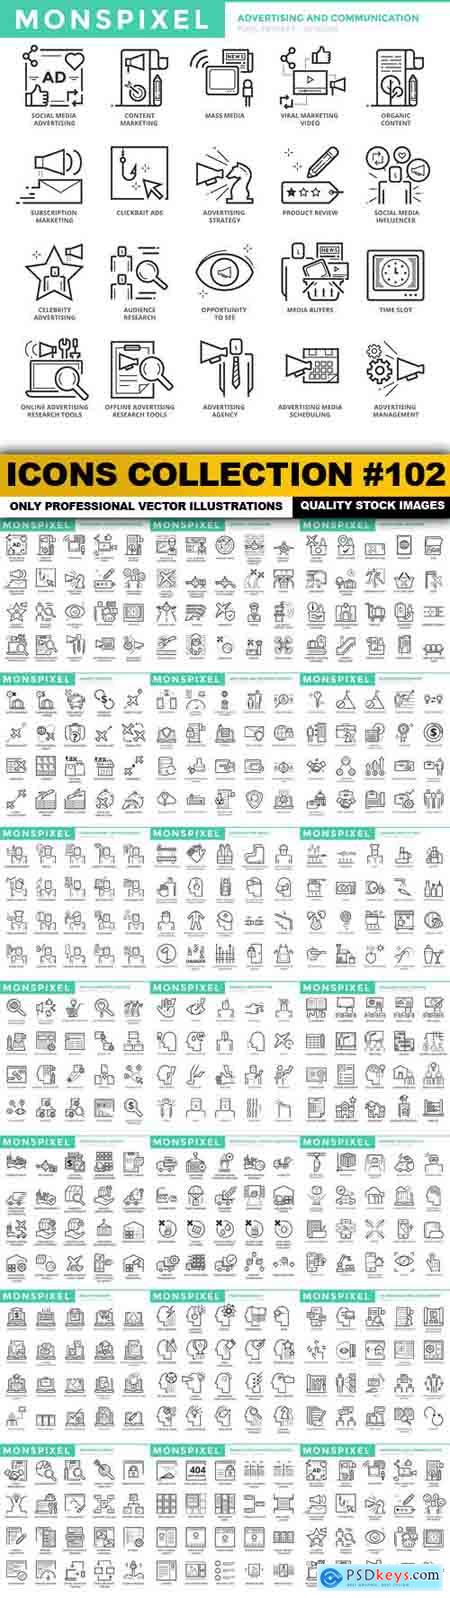 Icons Collection #102 - 20 Vector